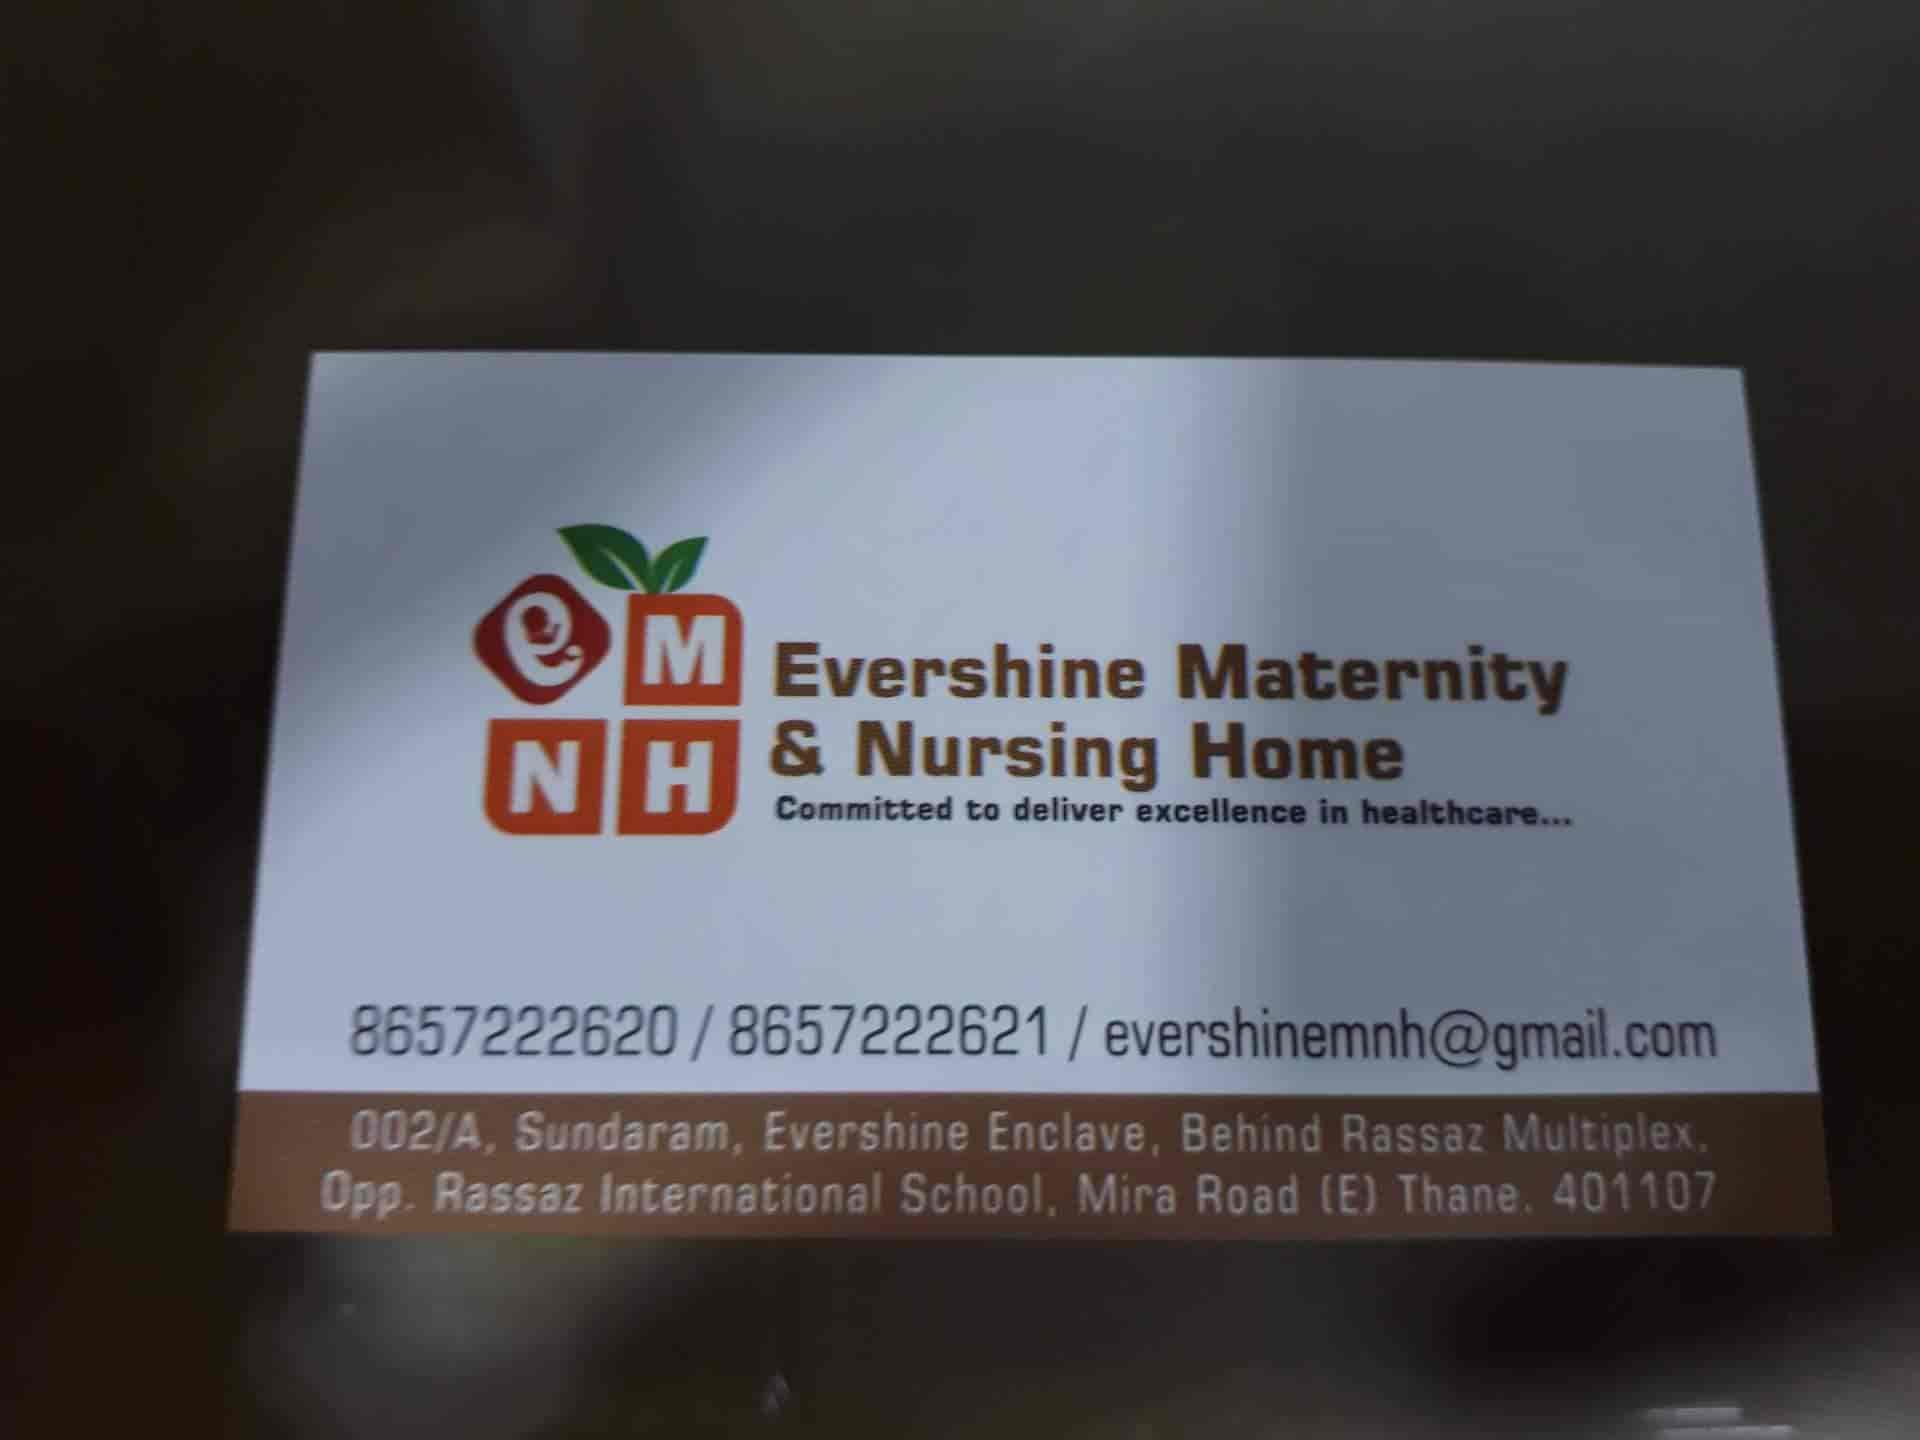 Evershine Maternity & Nursing Home, Mira Road - Hospitals in